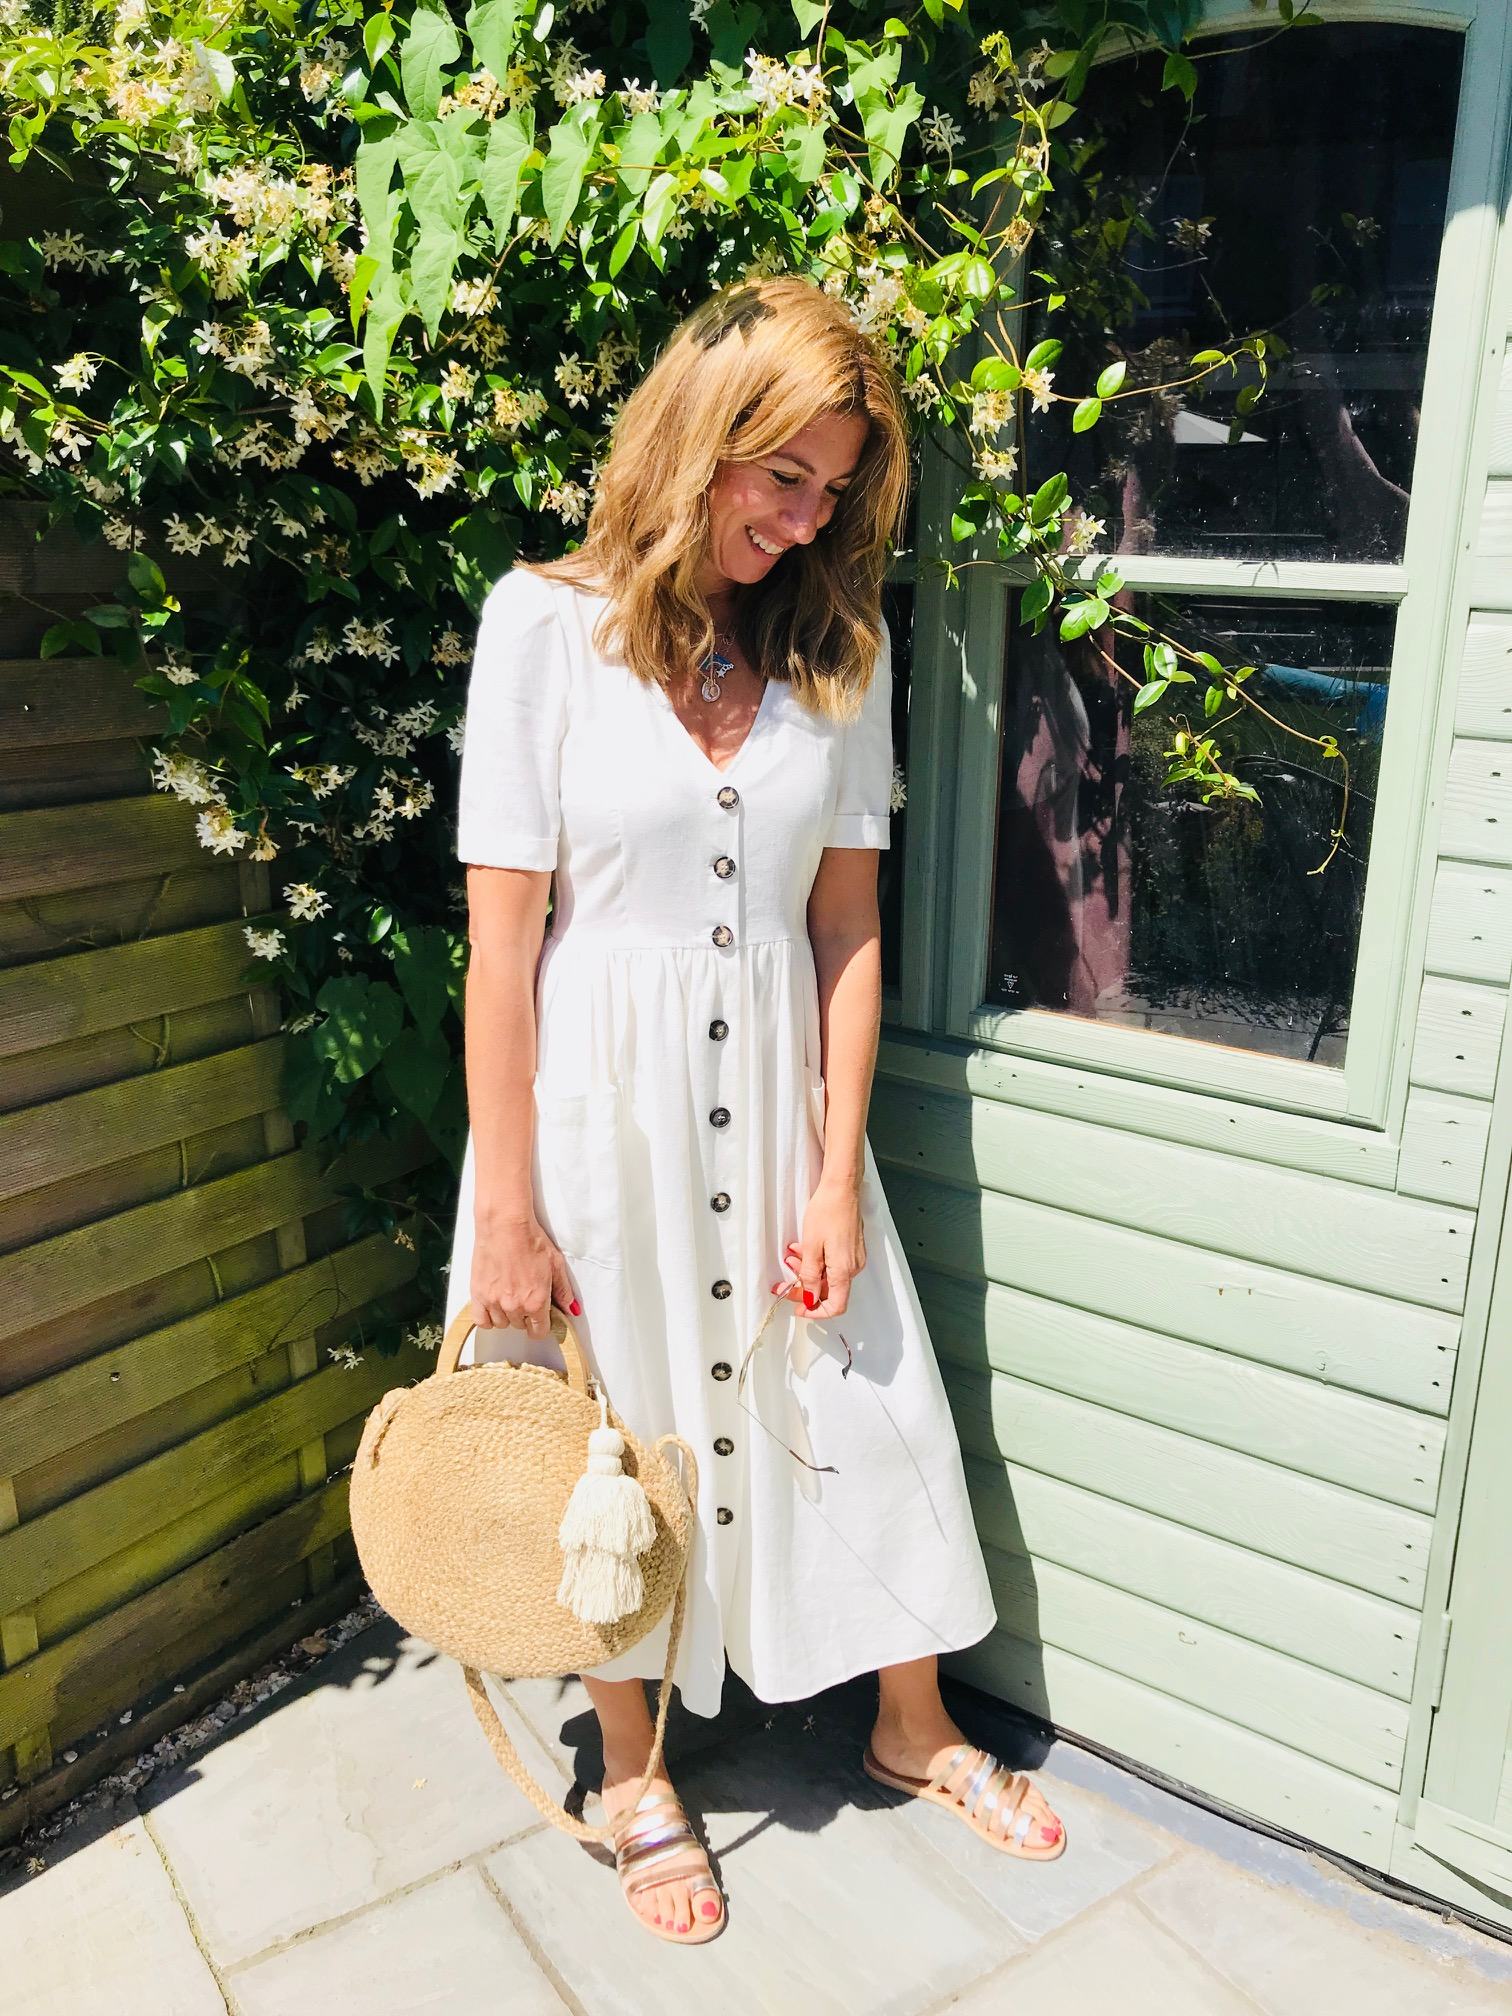 Sundress - From Zara£39.99One of Zara's great summer dressesThis is a small and it's a perfect fitLinen mixPart lined